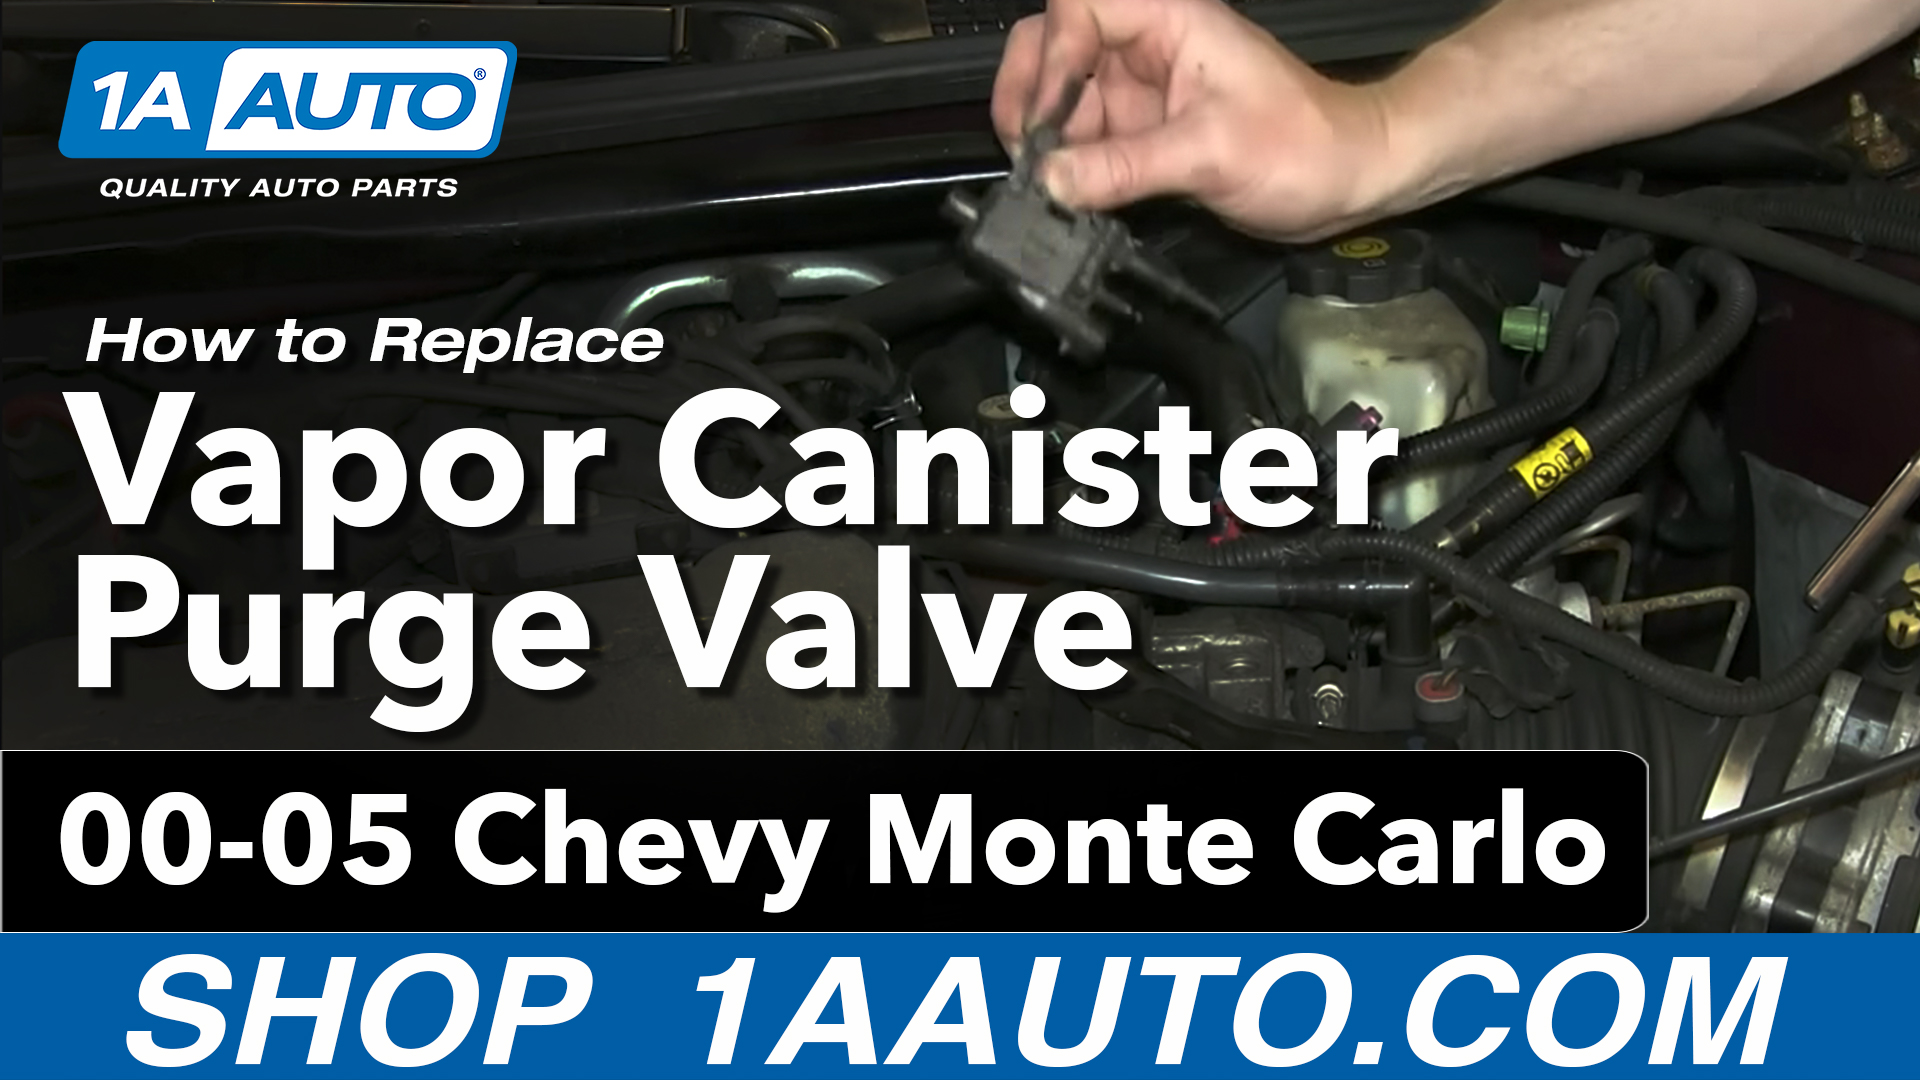 How to Replace Vapor Canister Purge Solenoid 00-05 Chevy Monte Carlo